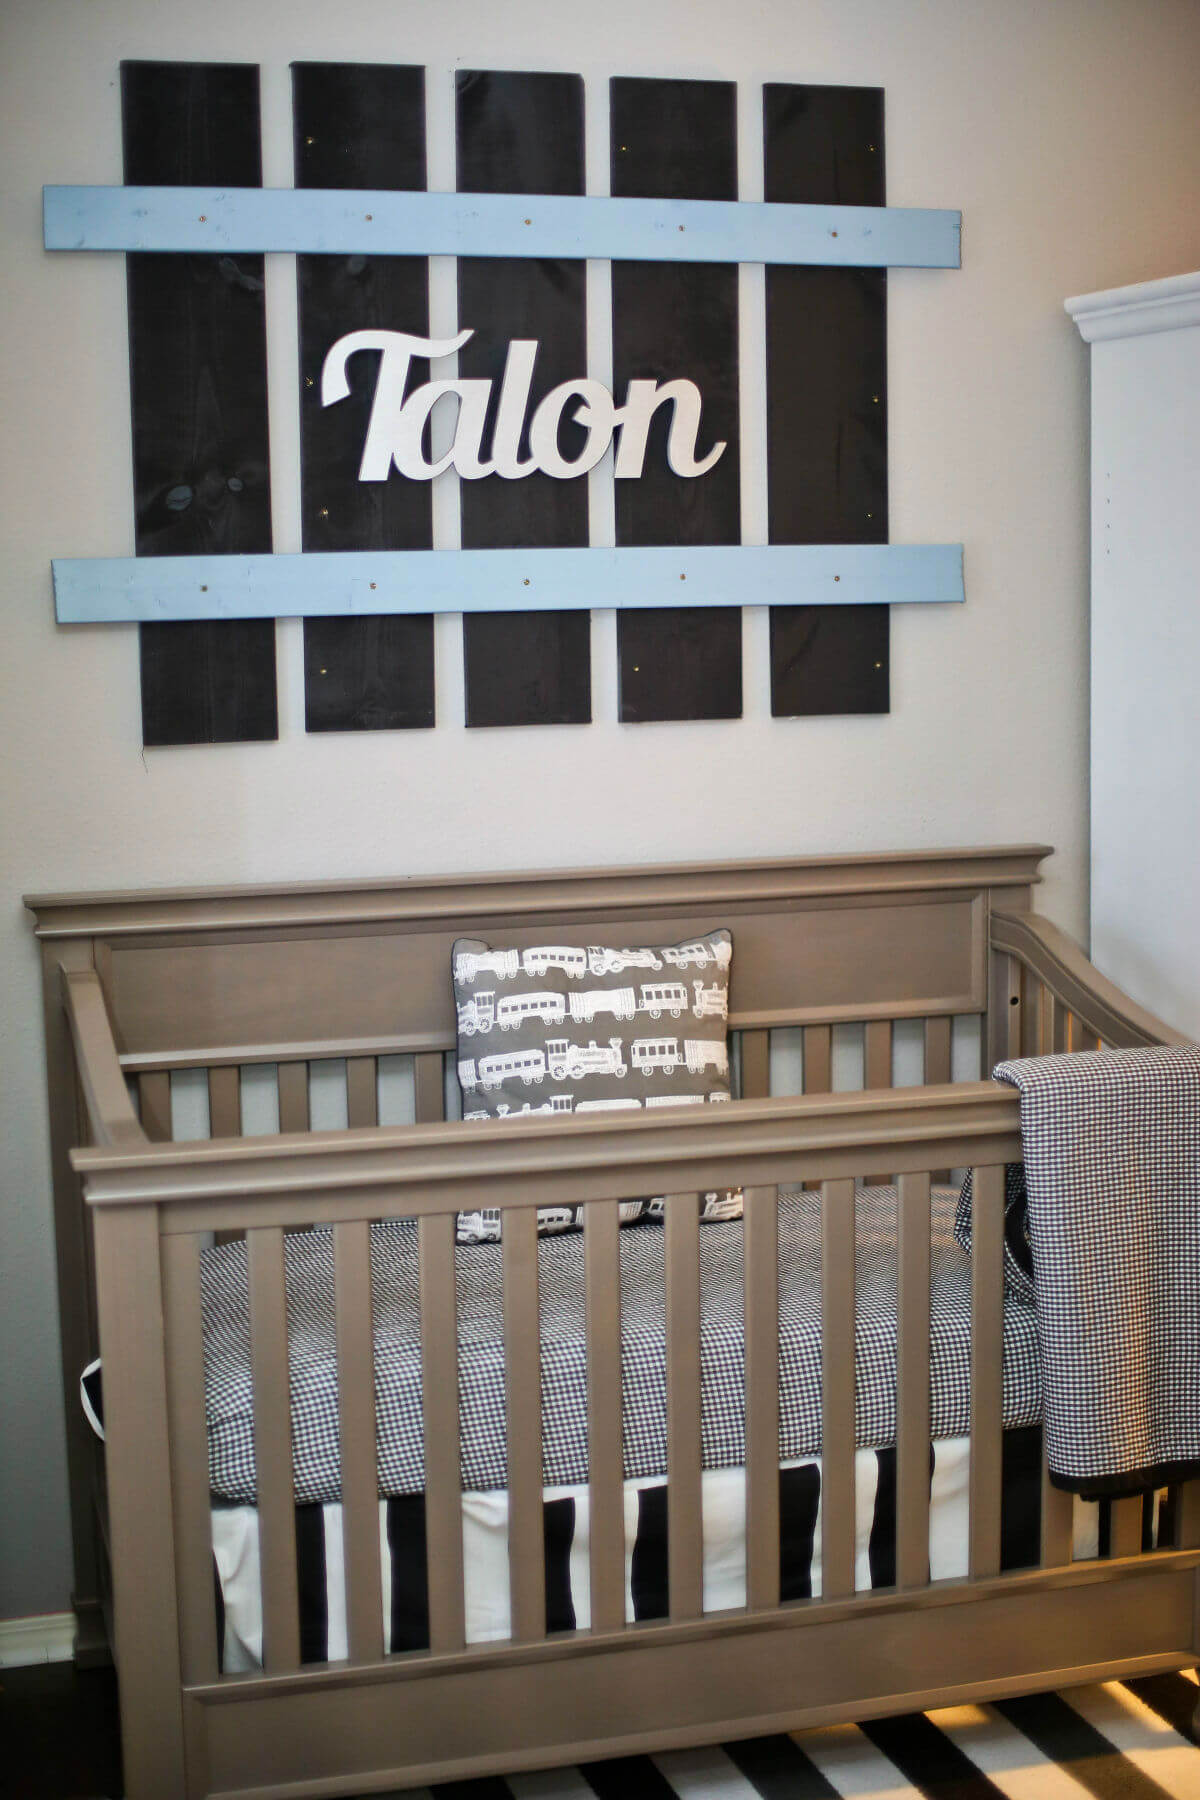 Railroad track name made | Bedding, Window Treatments, and Rugs for the Train Theme Nursery or Bedroom